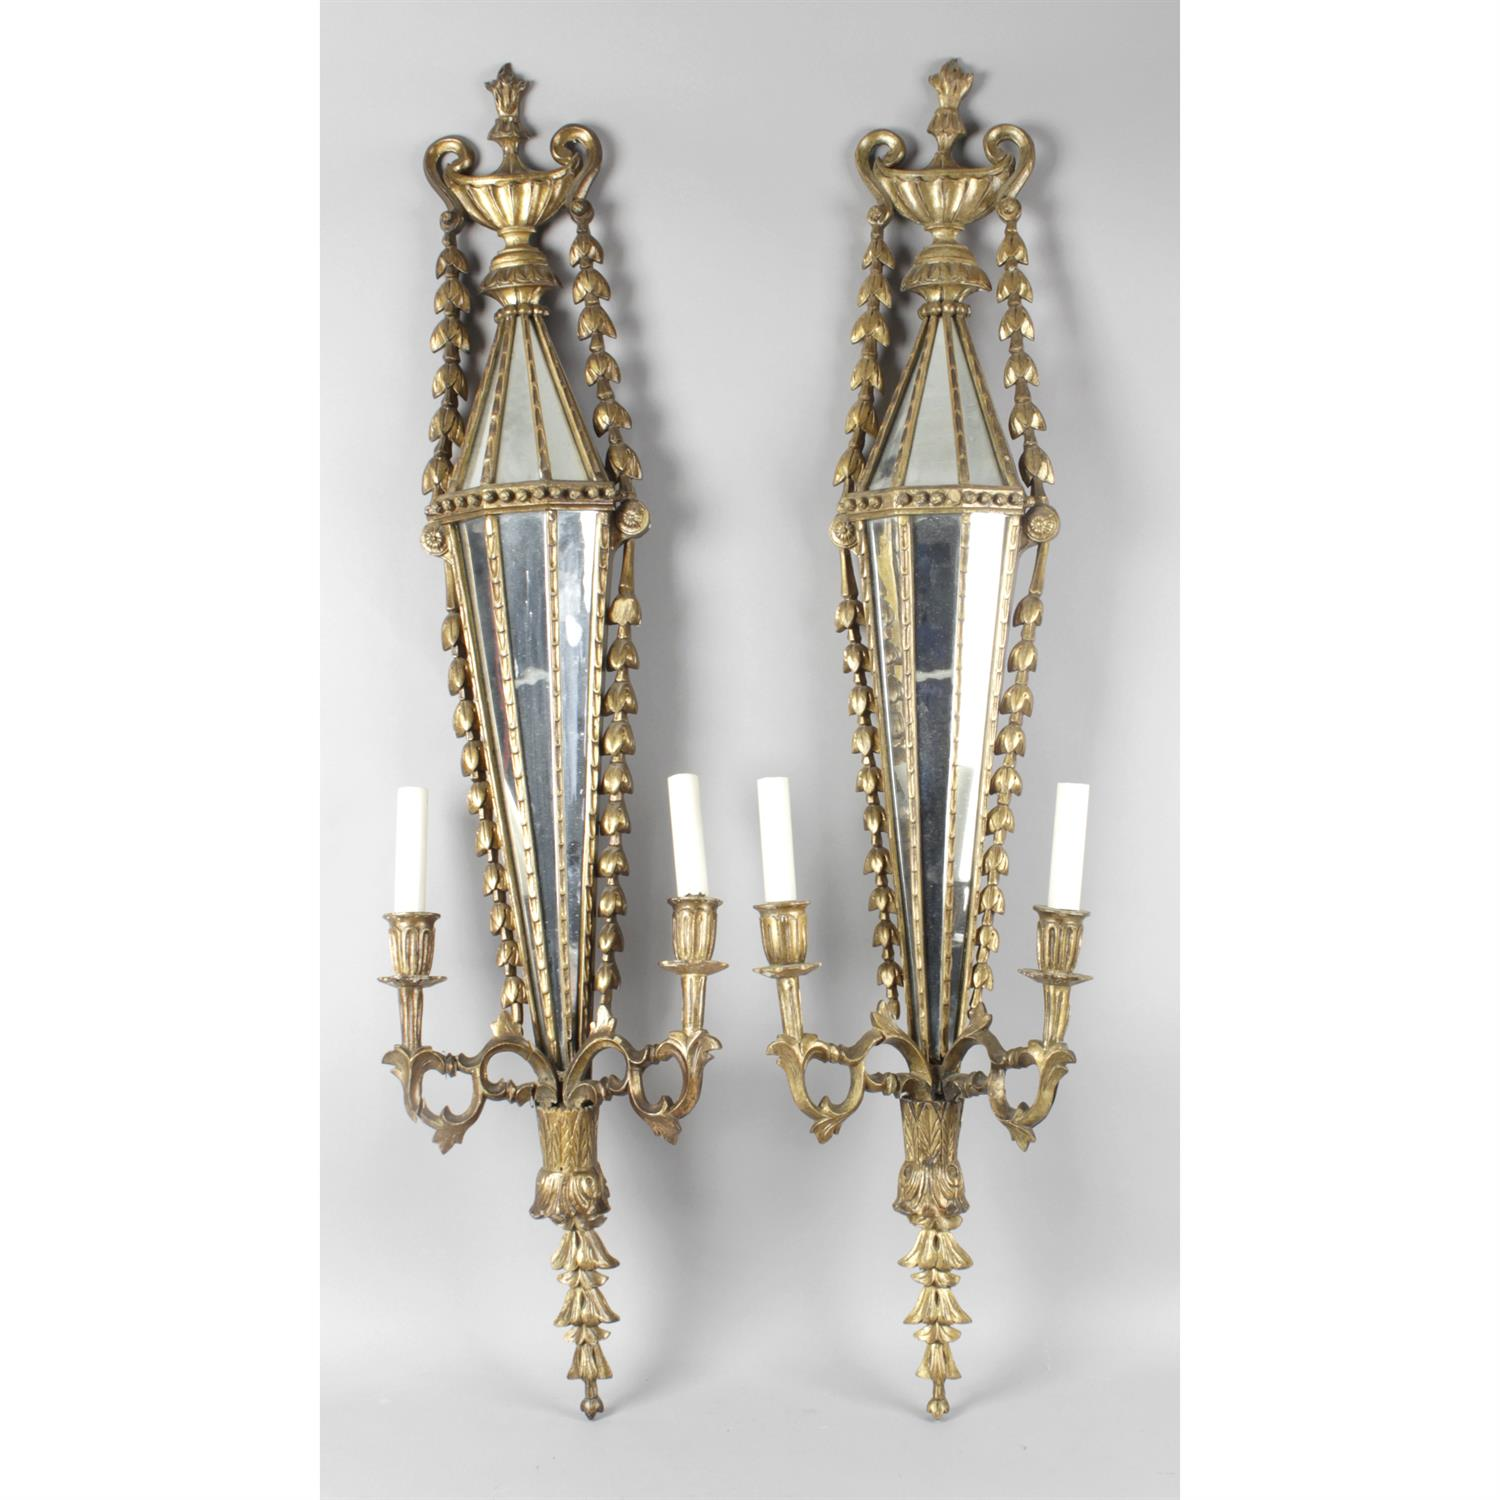 A pair of Giltwood Adam style twin branch wall lights